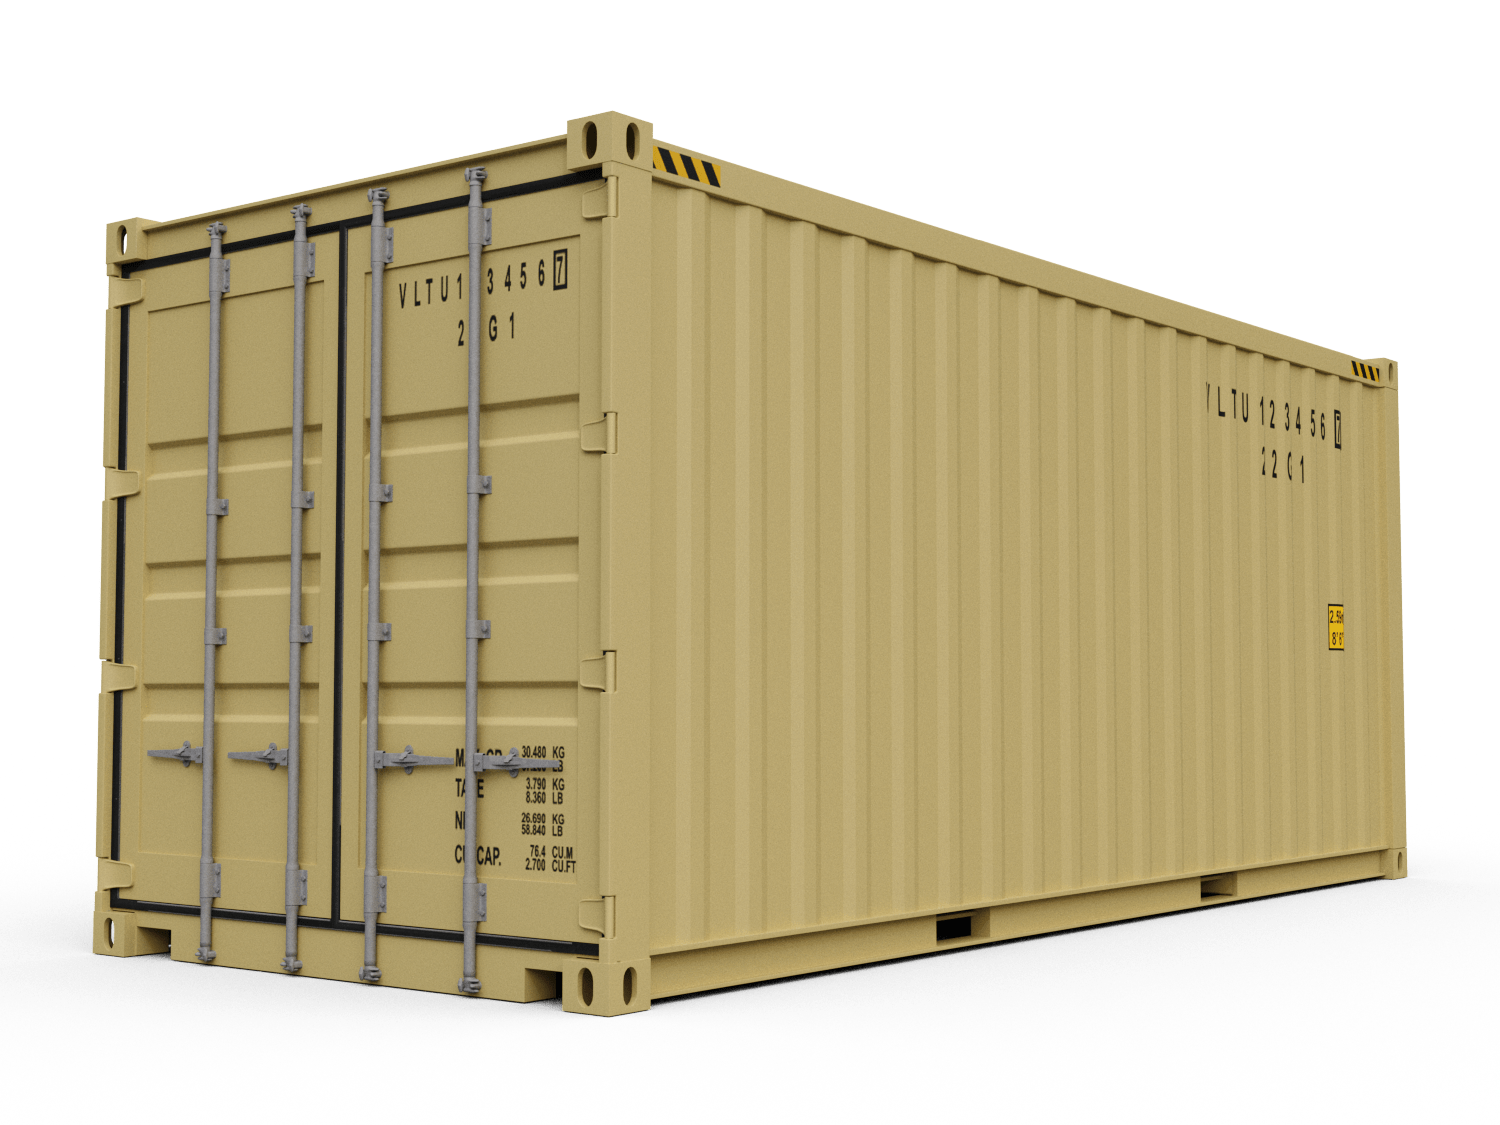 Shipping Container Prices >> 20 Foot Shipping Containers For Sale